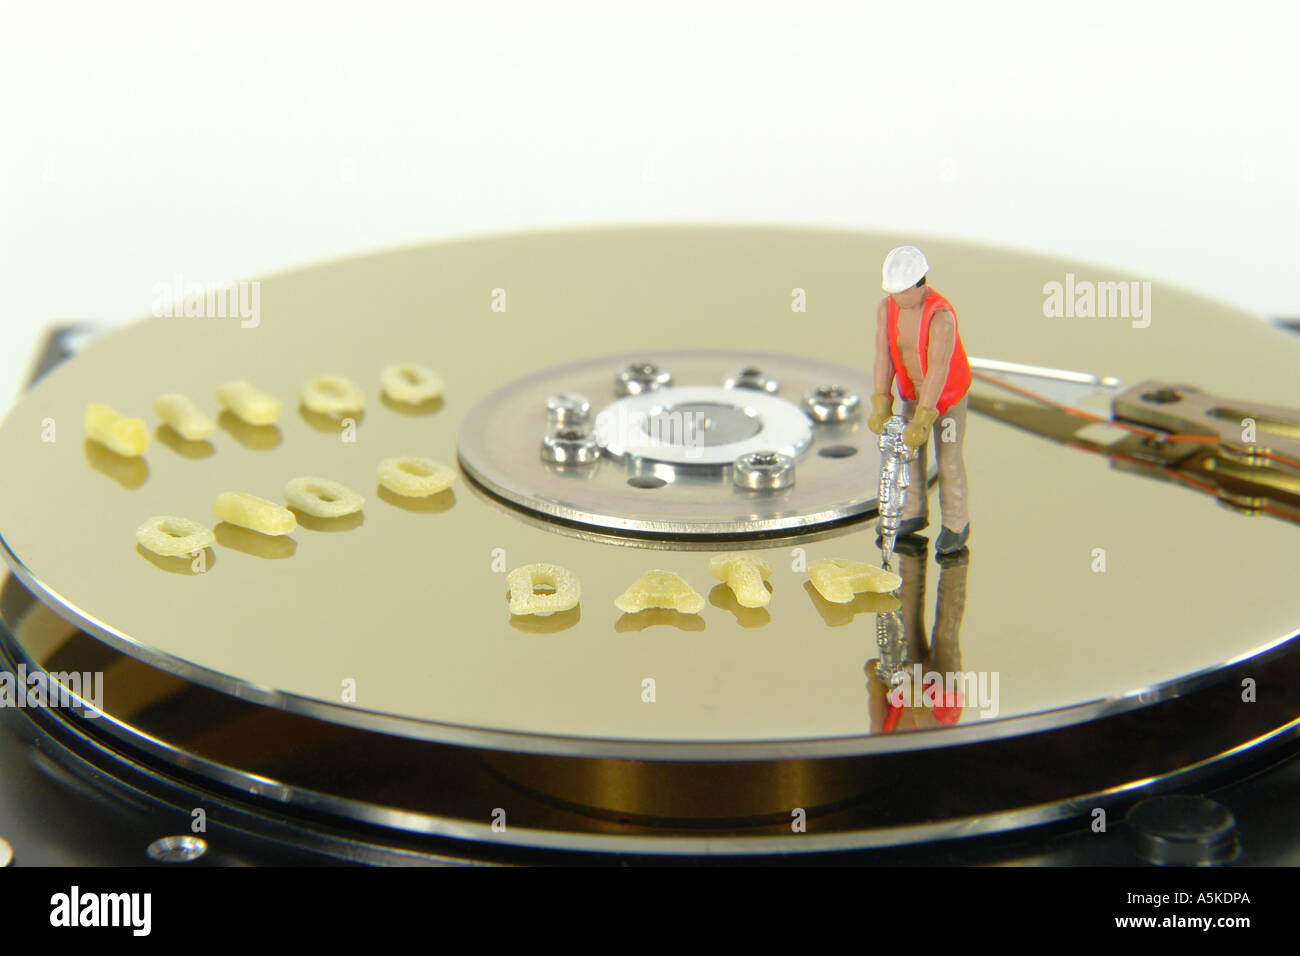 Symbolic Image data on a Harddisc (DATA) - Stock Image